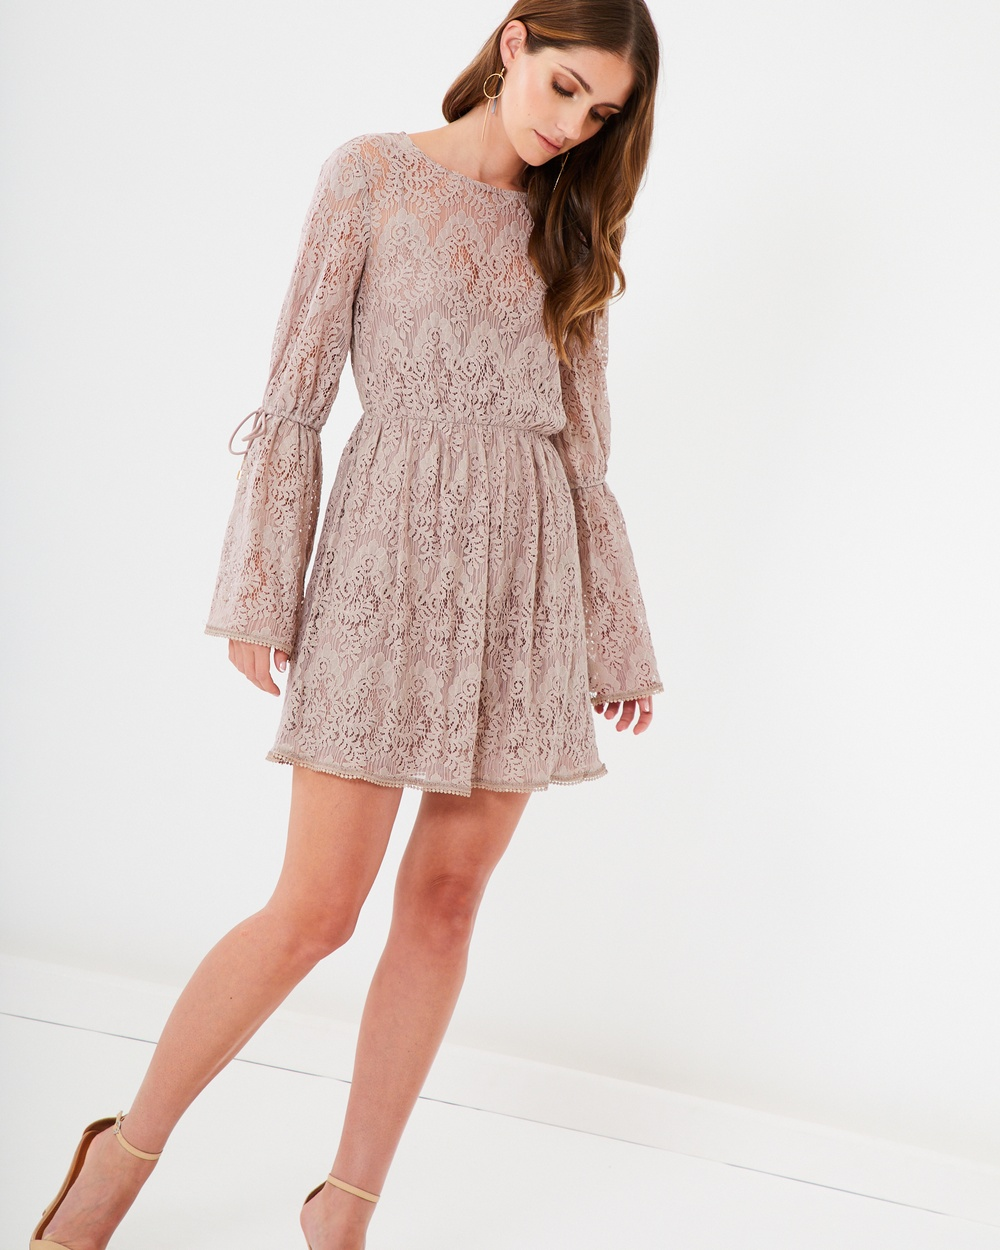 CHANCERY Indiana Lace Mini Dress Dresses Taupe Indiana Lace Mini Dress